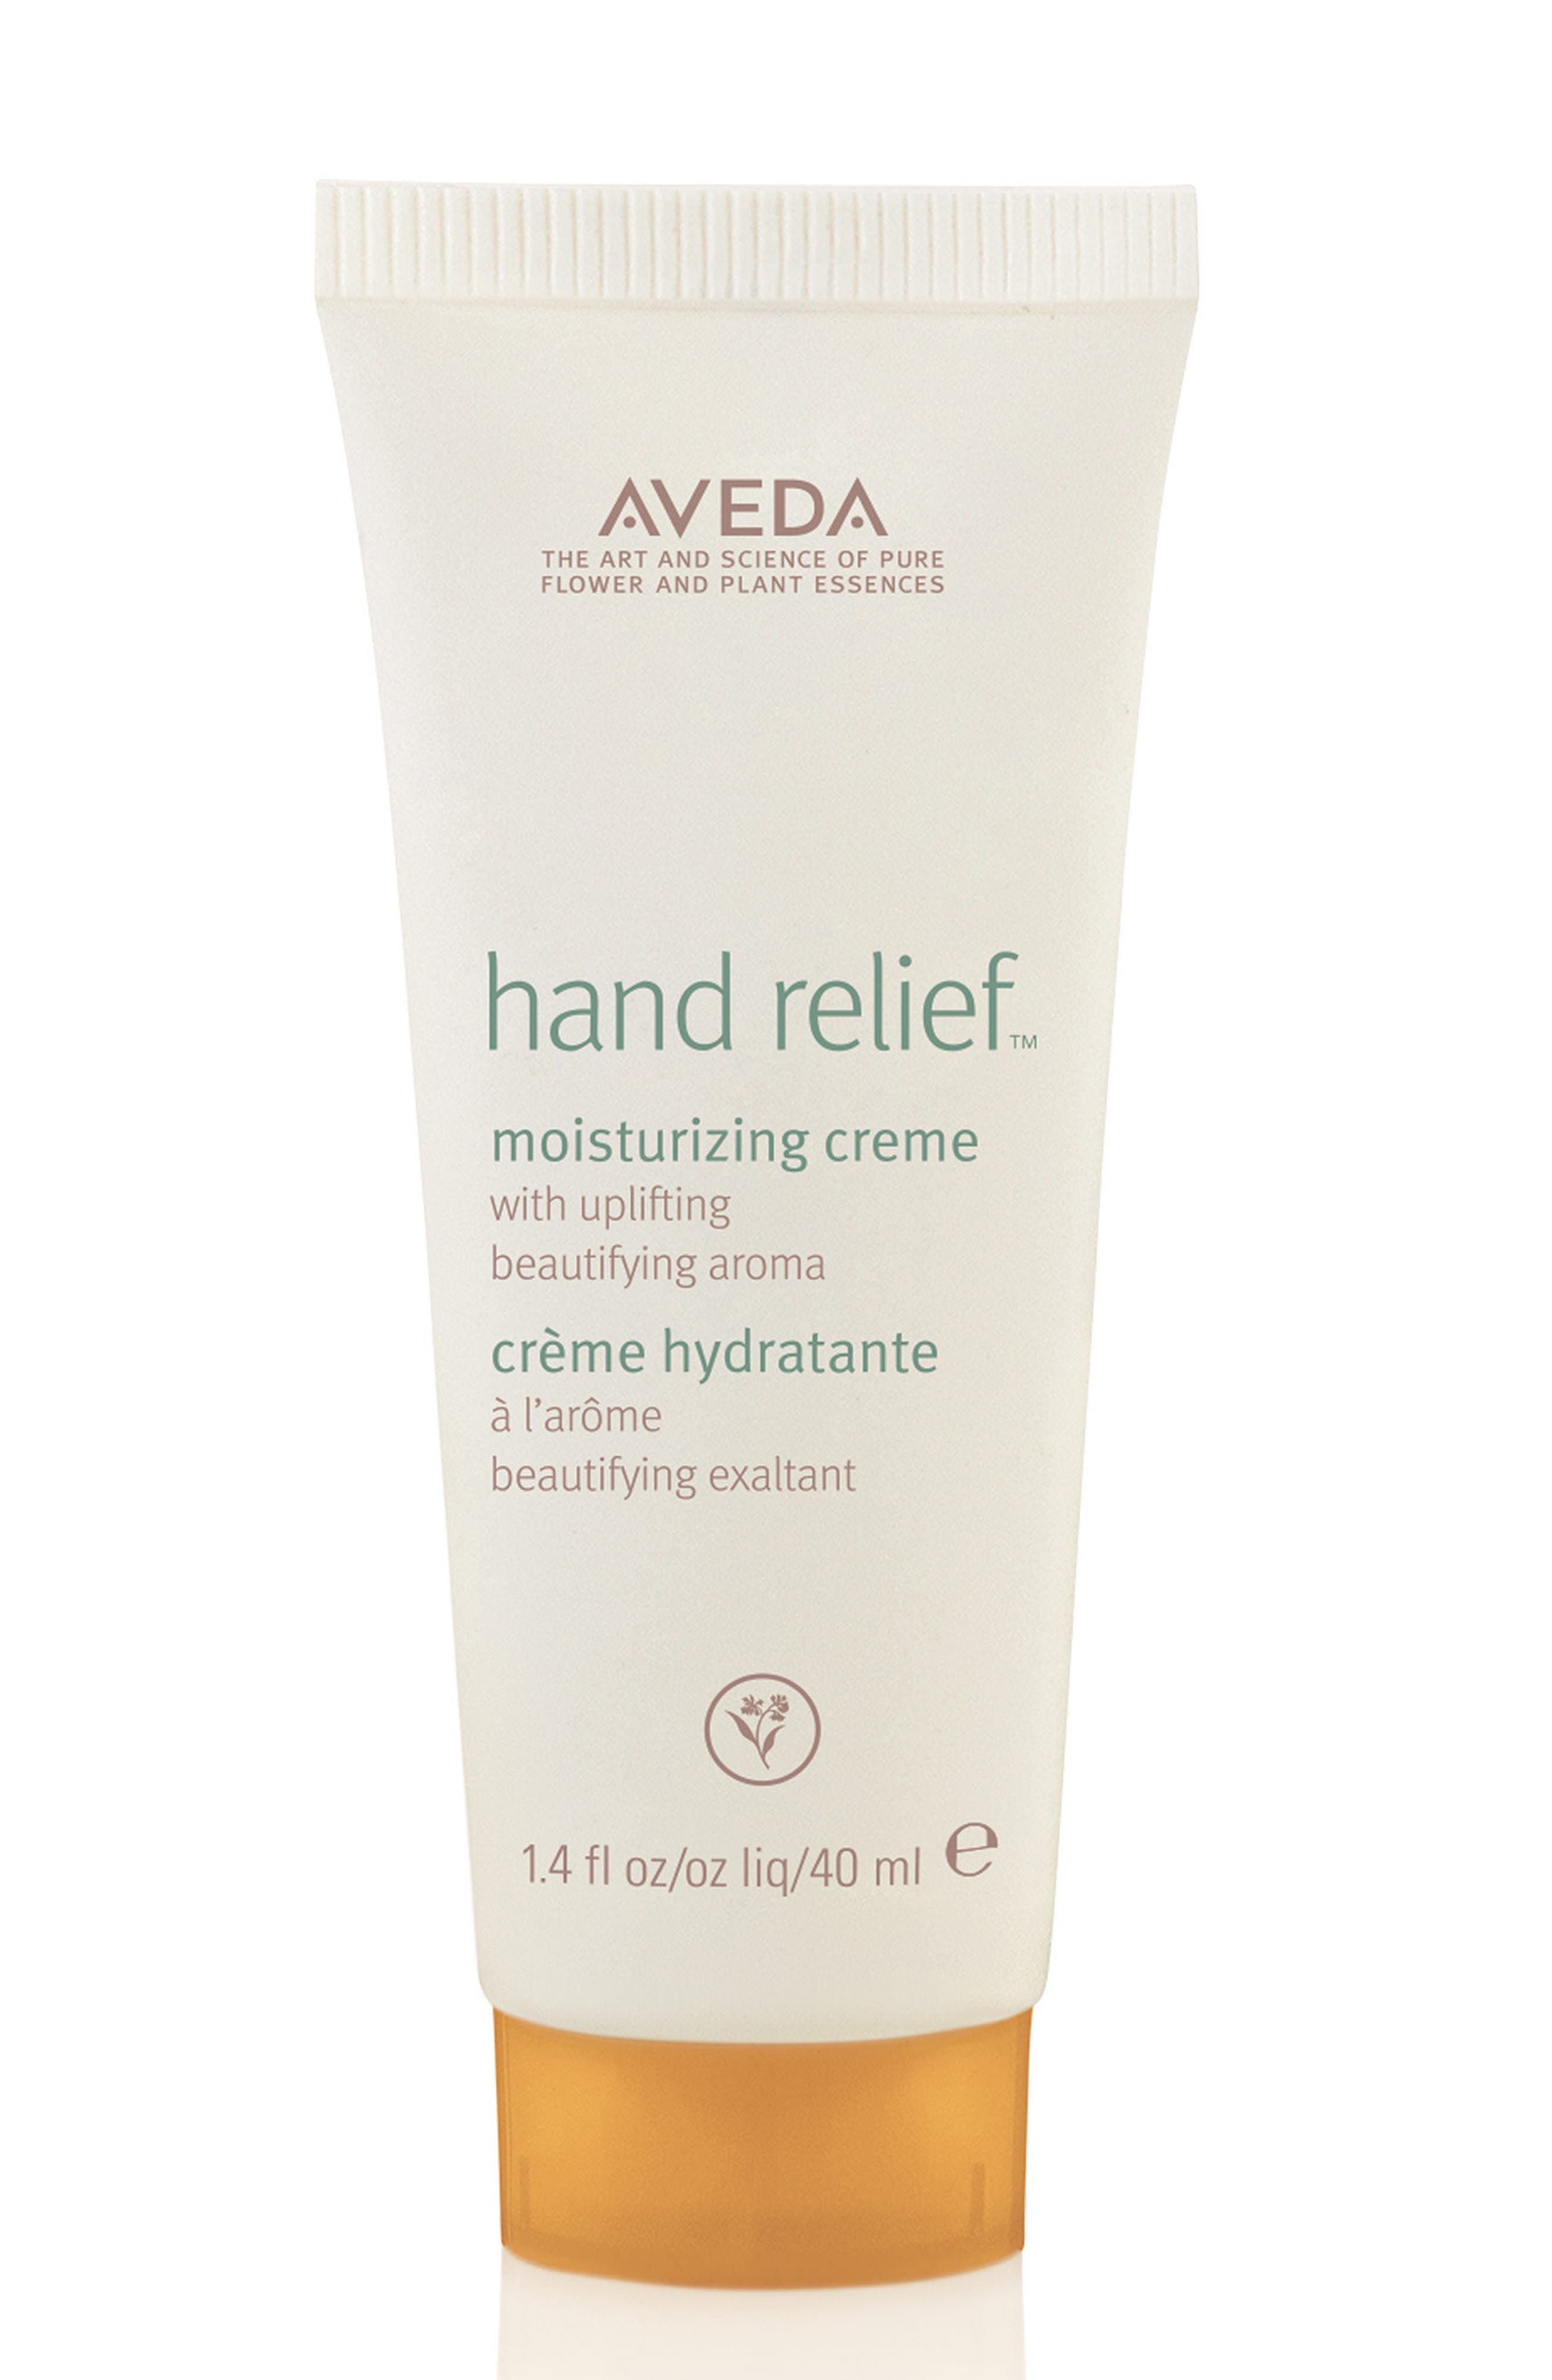 Aveda hand relief™ Moisturizing Creme with Beautifying Aroma (Limited Edition)